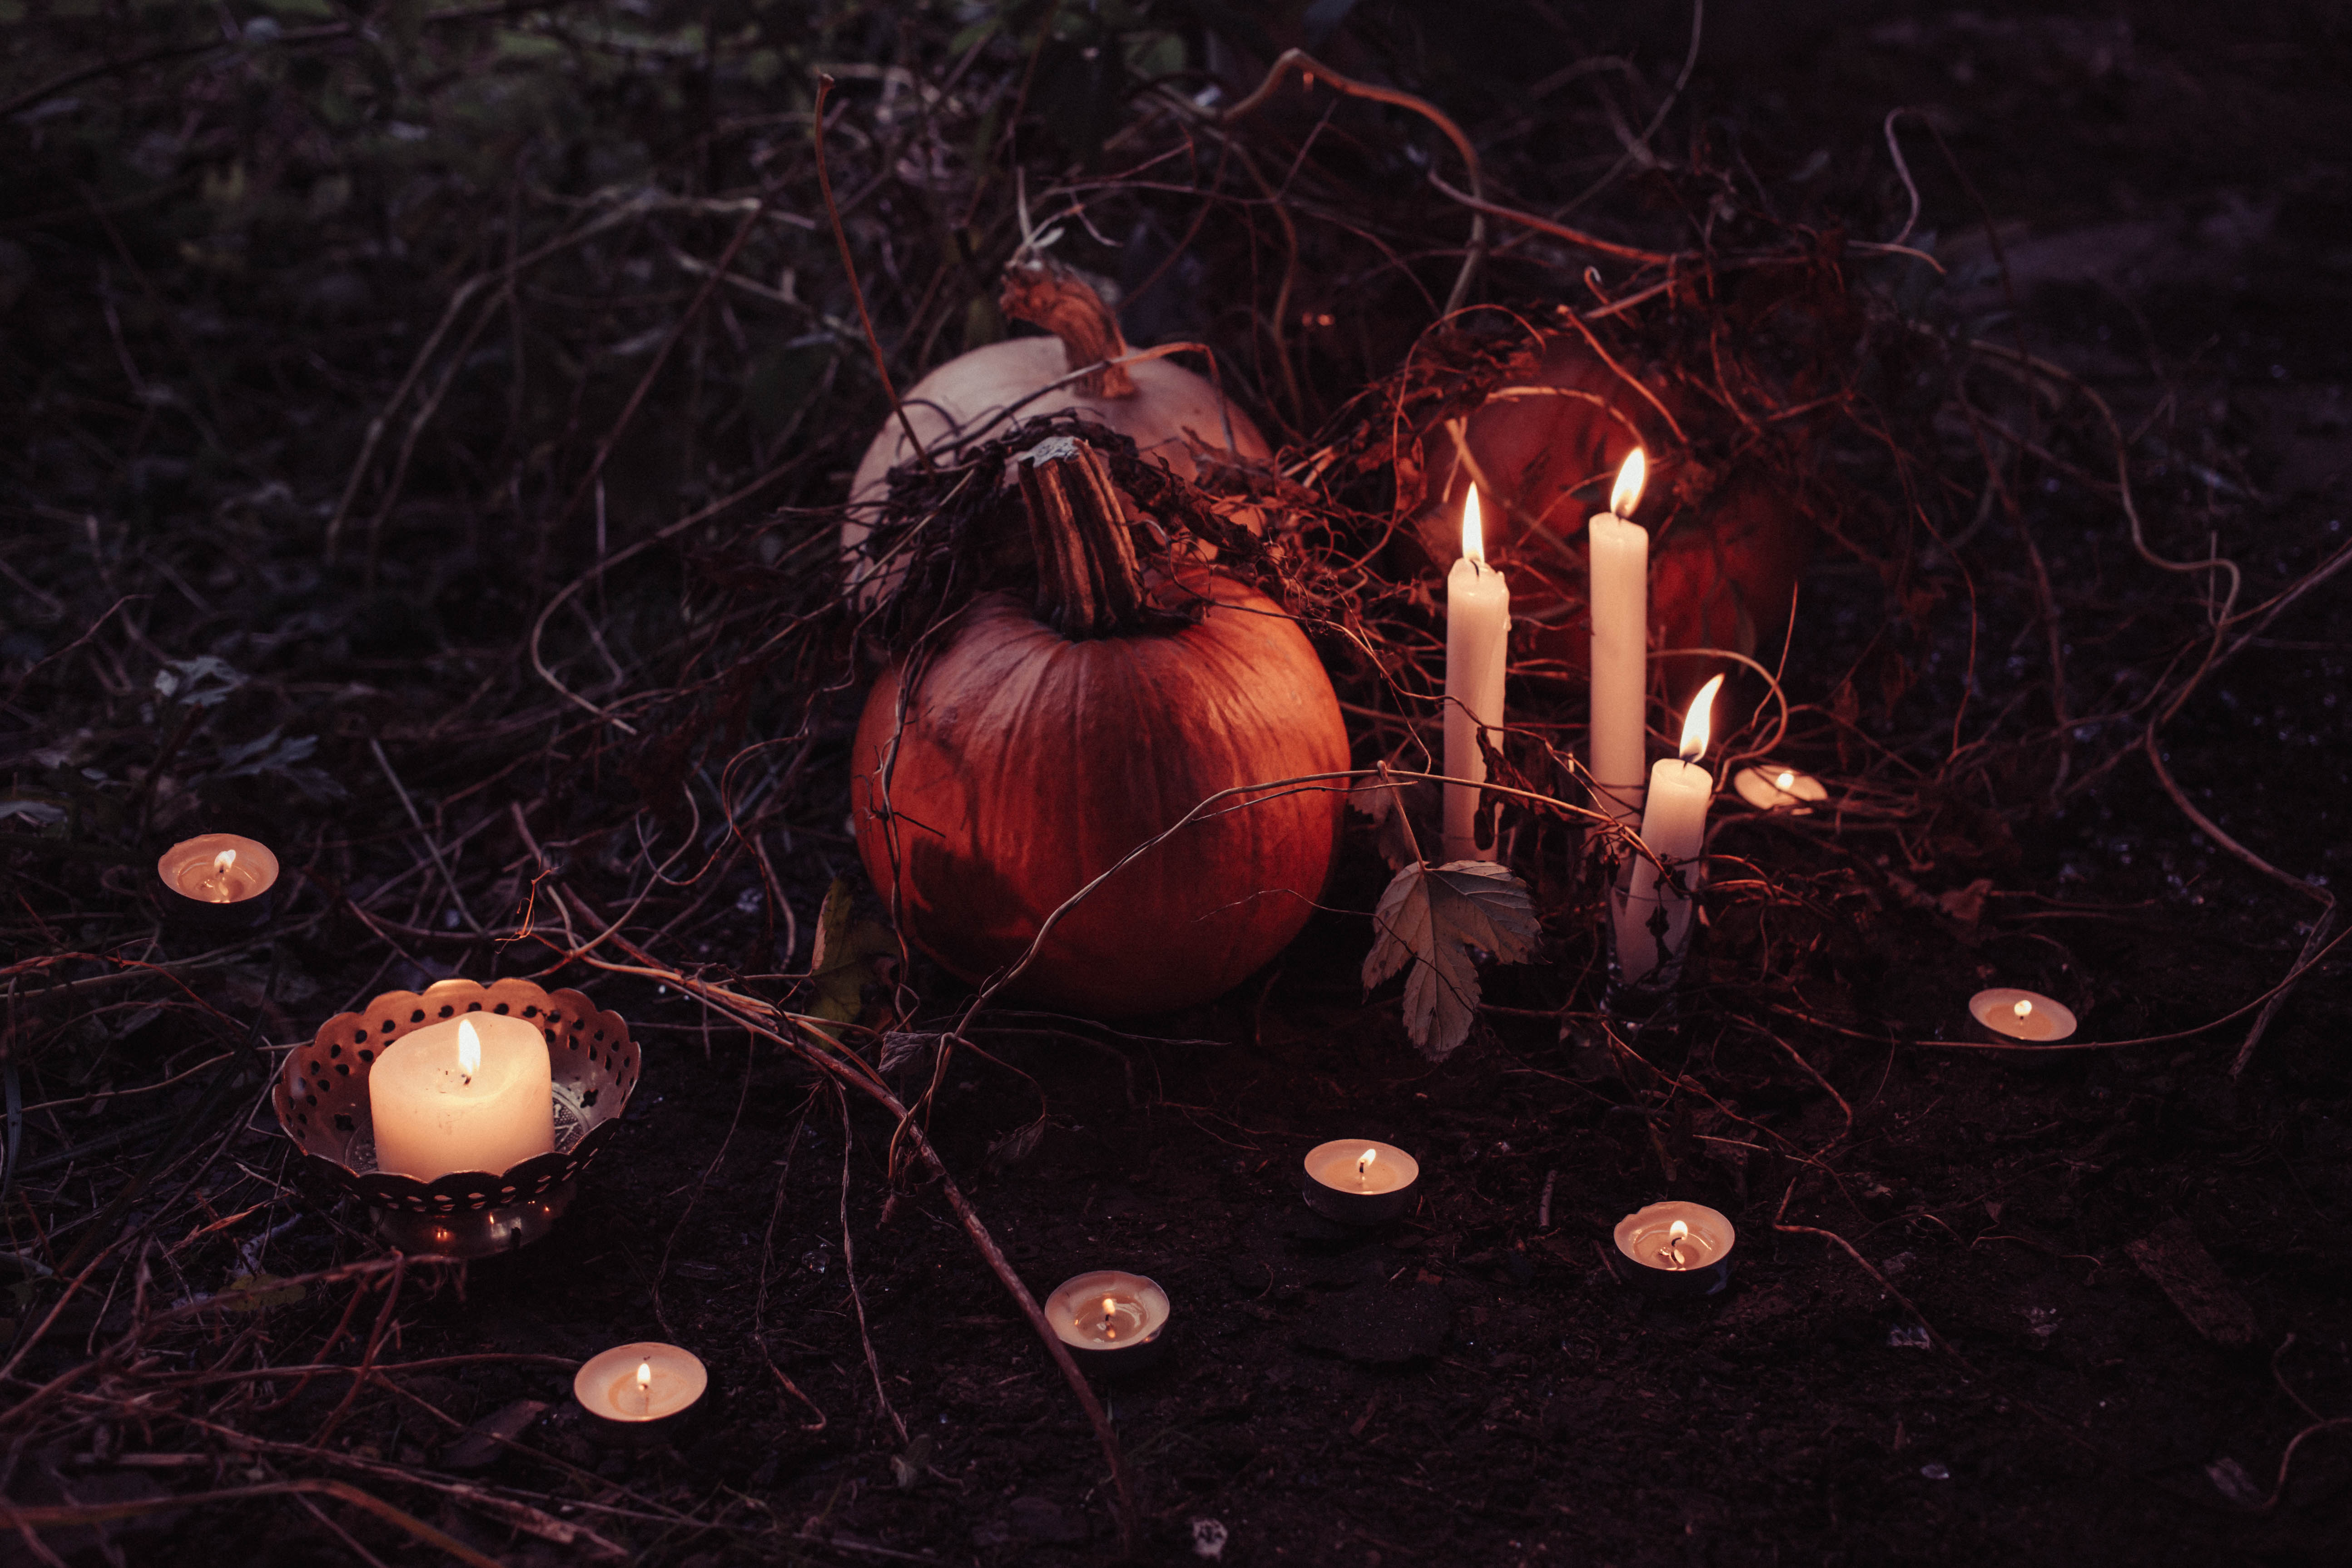 Spooky Halloween decoration, Autumn, Magic, Treat, Traditional, HQ Photo